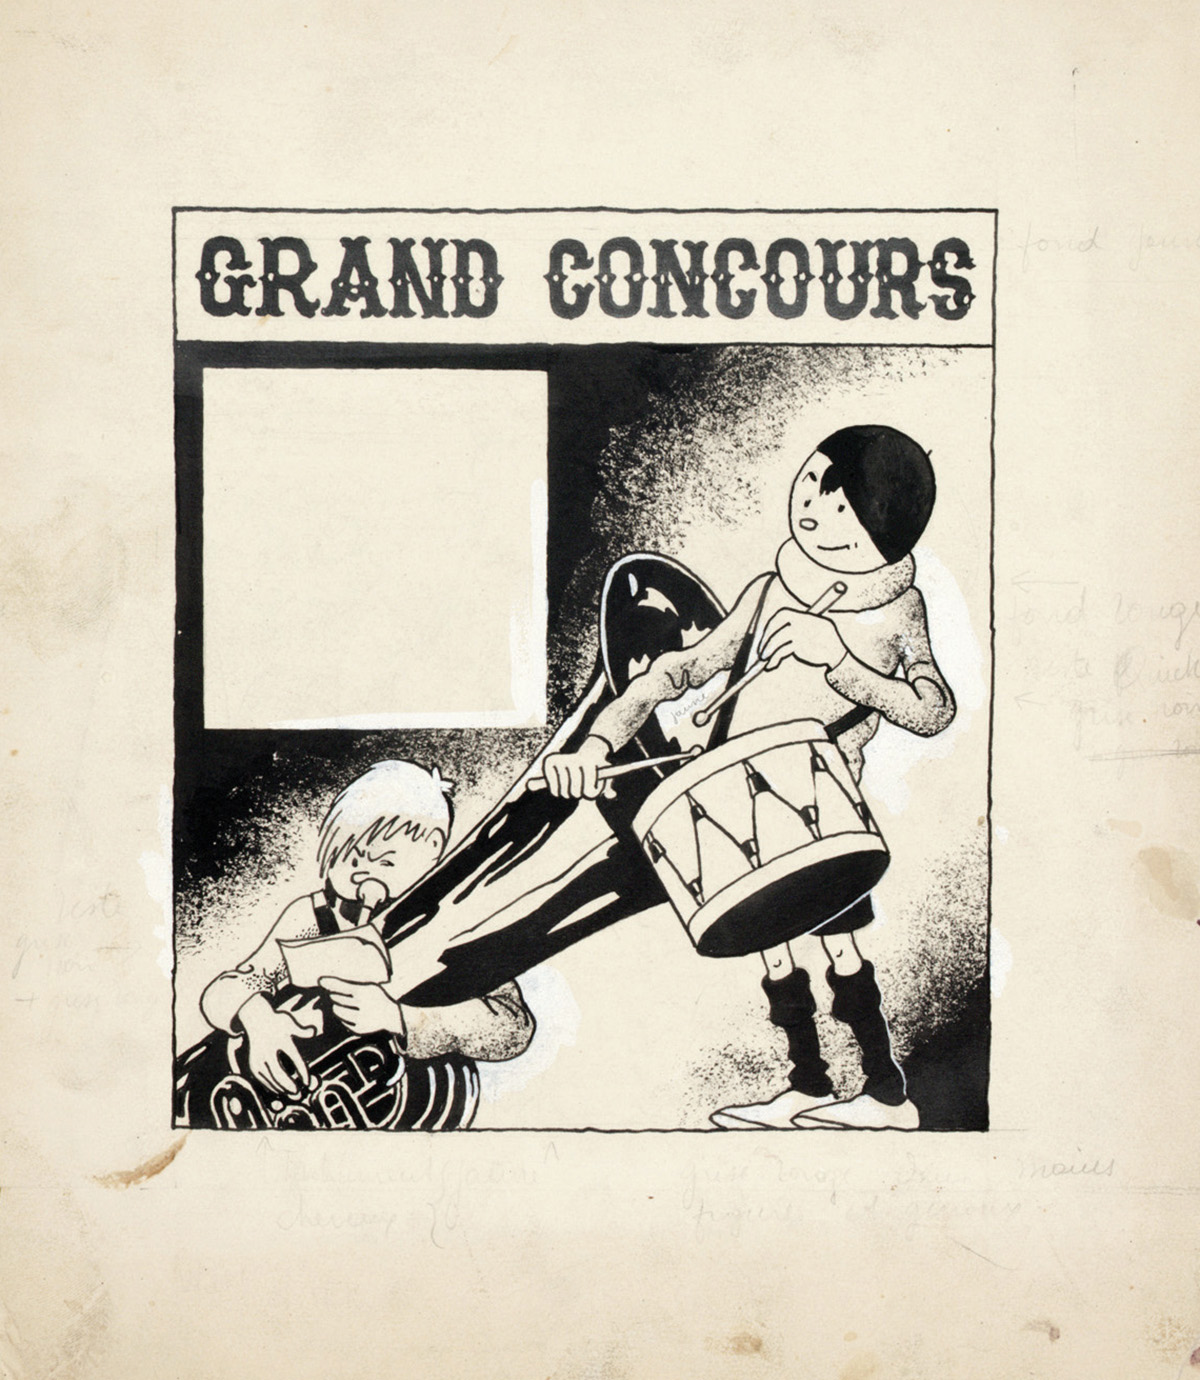 Les Aventures de Quick et Flupke – Grand Concours, cover illustration of the Petit Vingtième edition of June 16 1938 (Indian ink and gouache on paper)